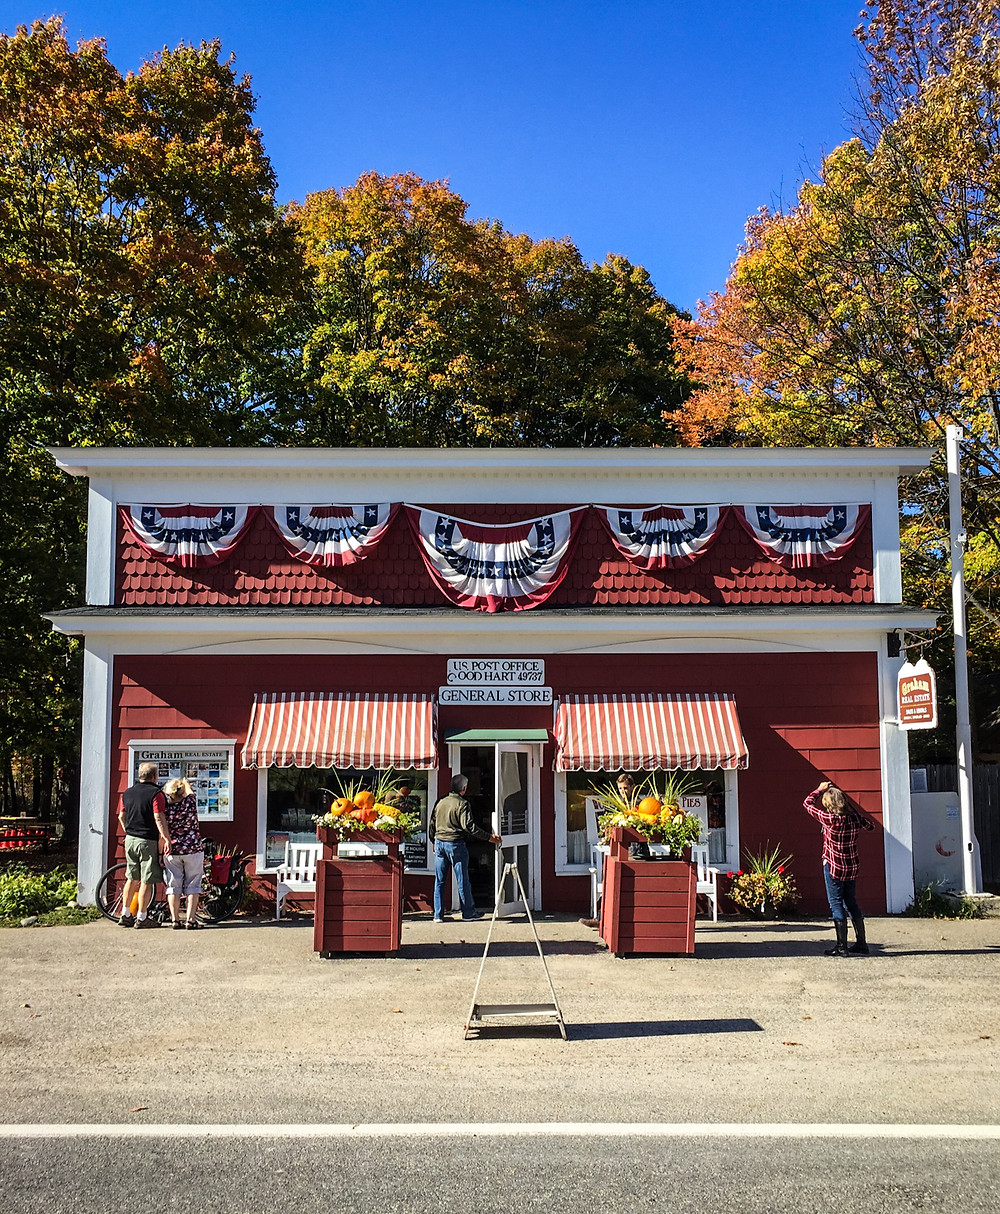 The Good Hart General Store in Good Hart along M-119 in Northern Michigan's iconic Tunnel of Trees.